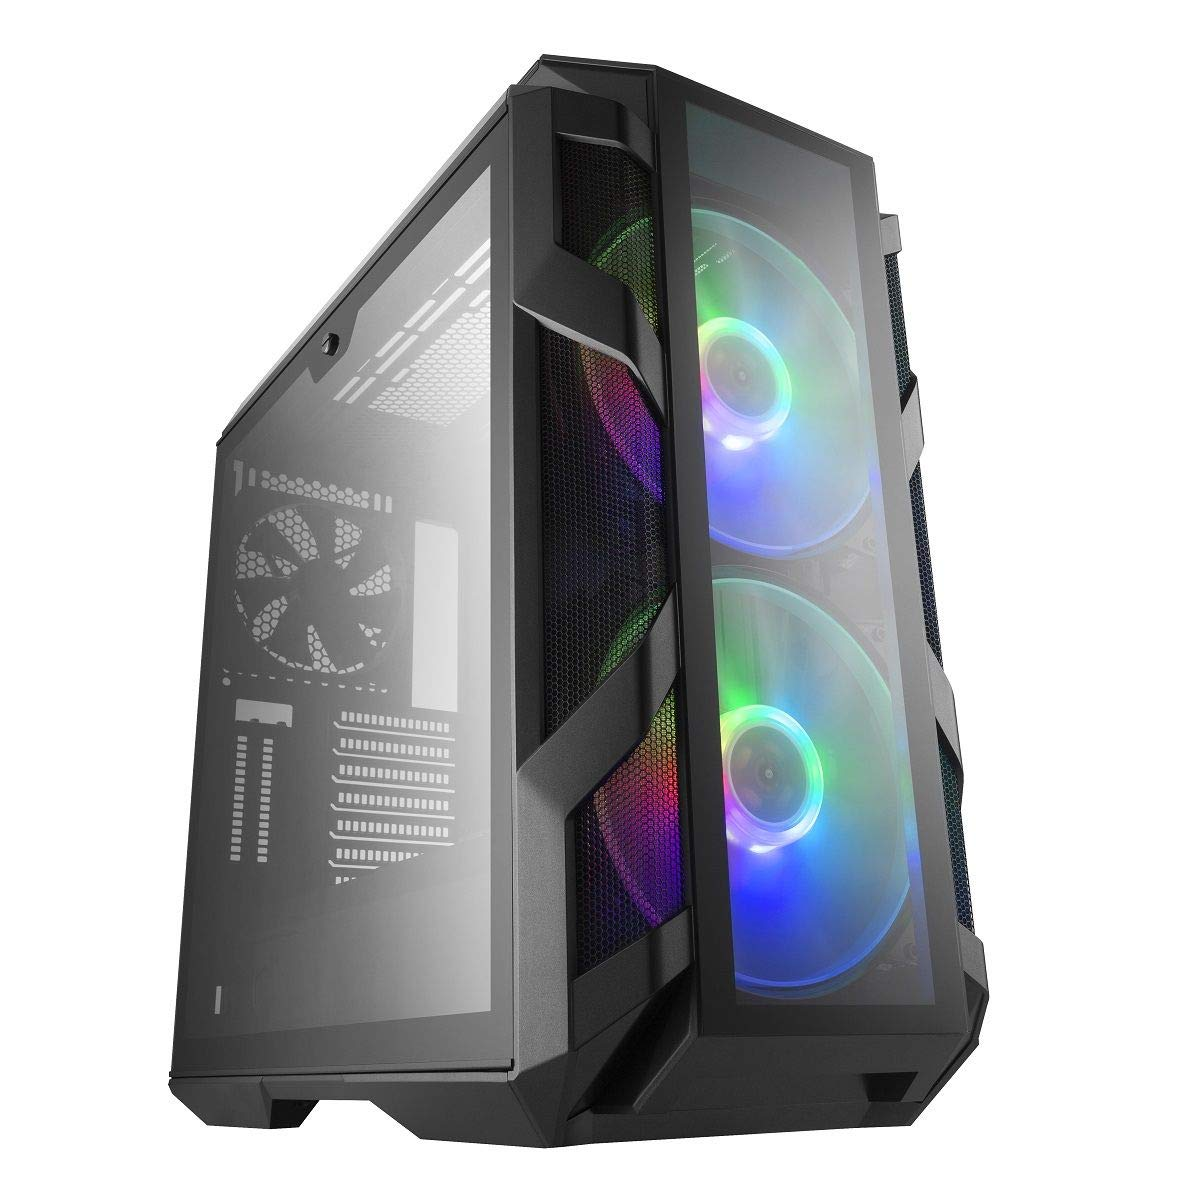 Cooler Master MasterCase H500M ATX Mid-Tower, four tempered glass panels, two 200mm ARGB fans with Controller and three Cable Management Covers Case